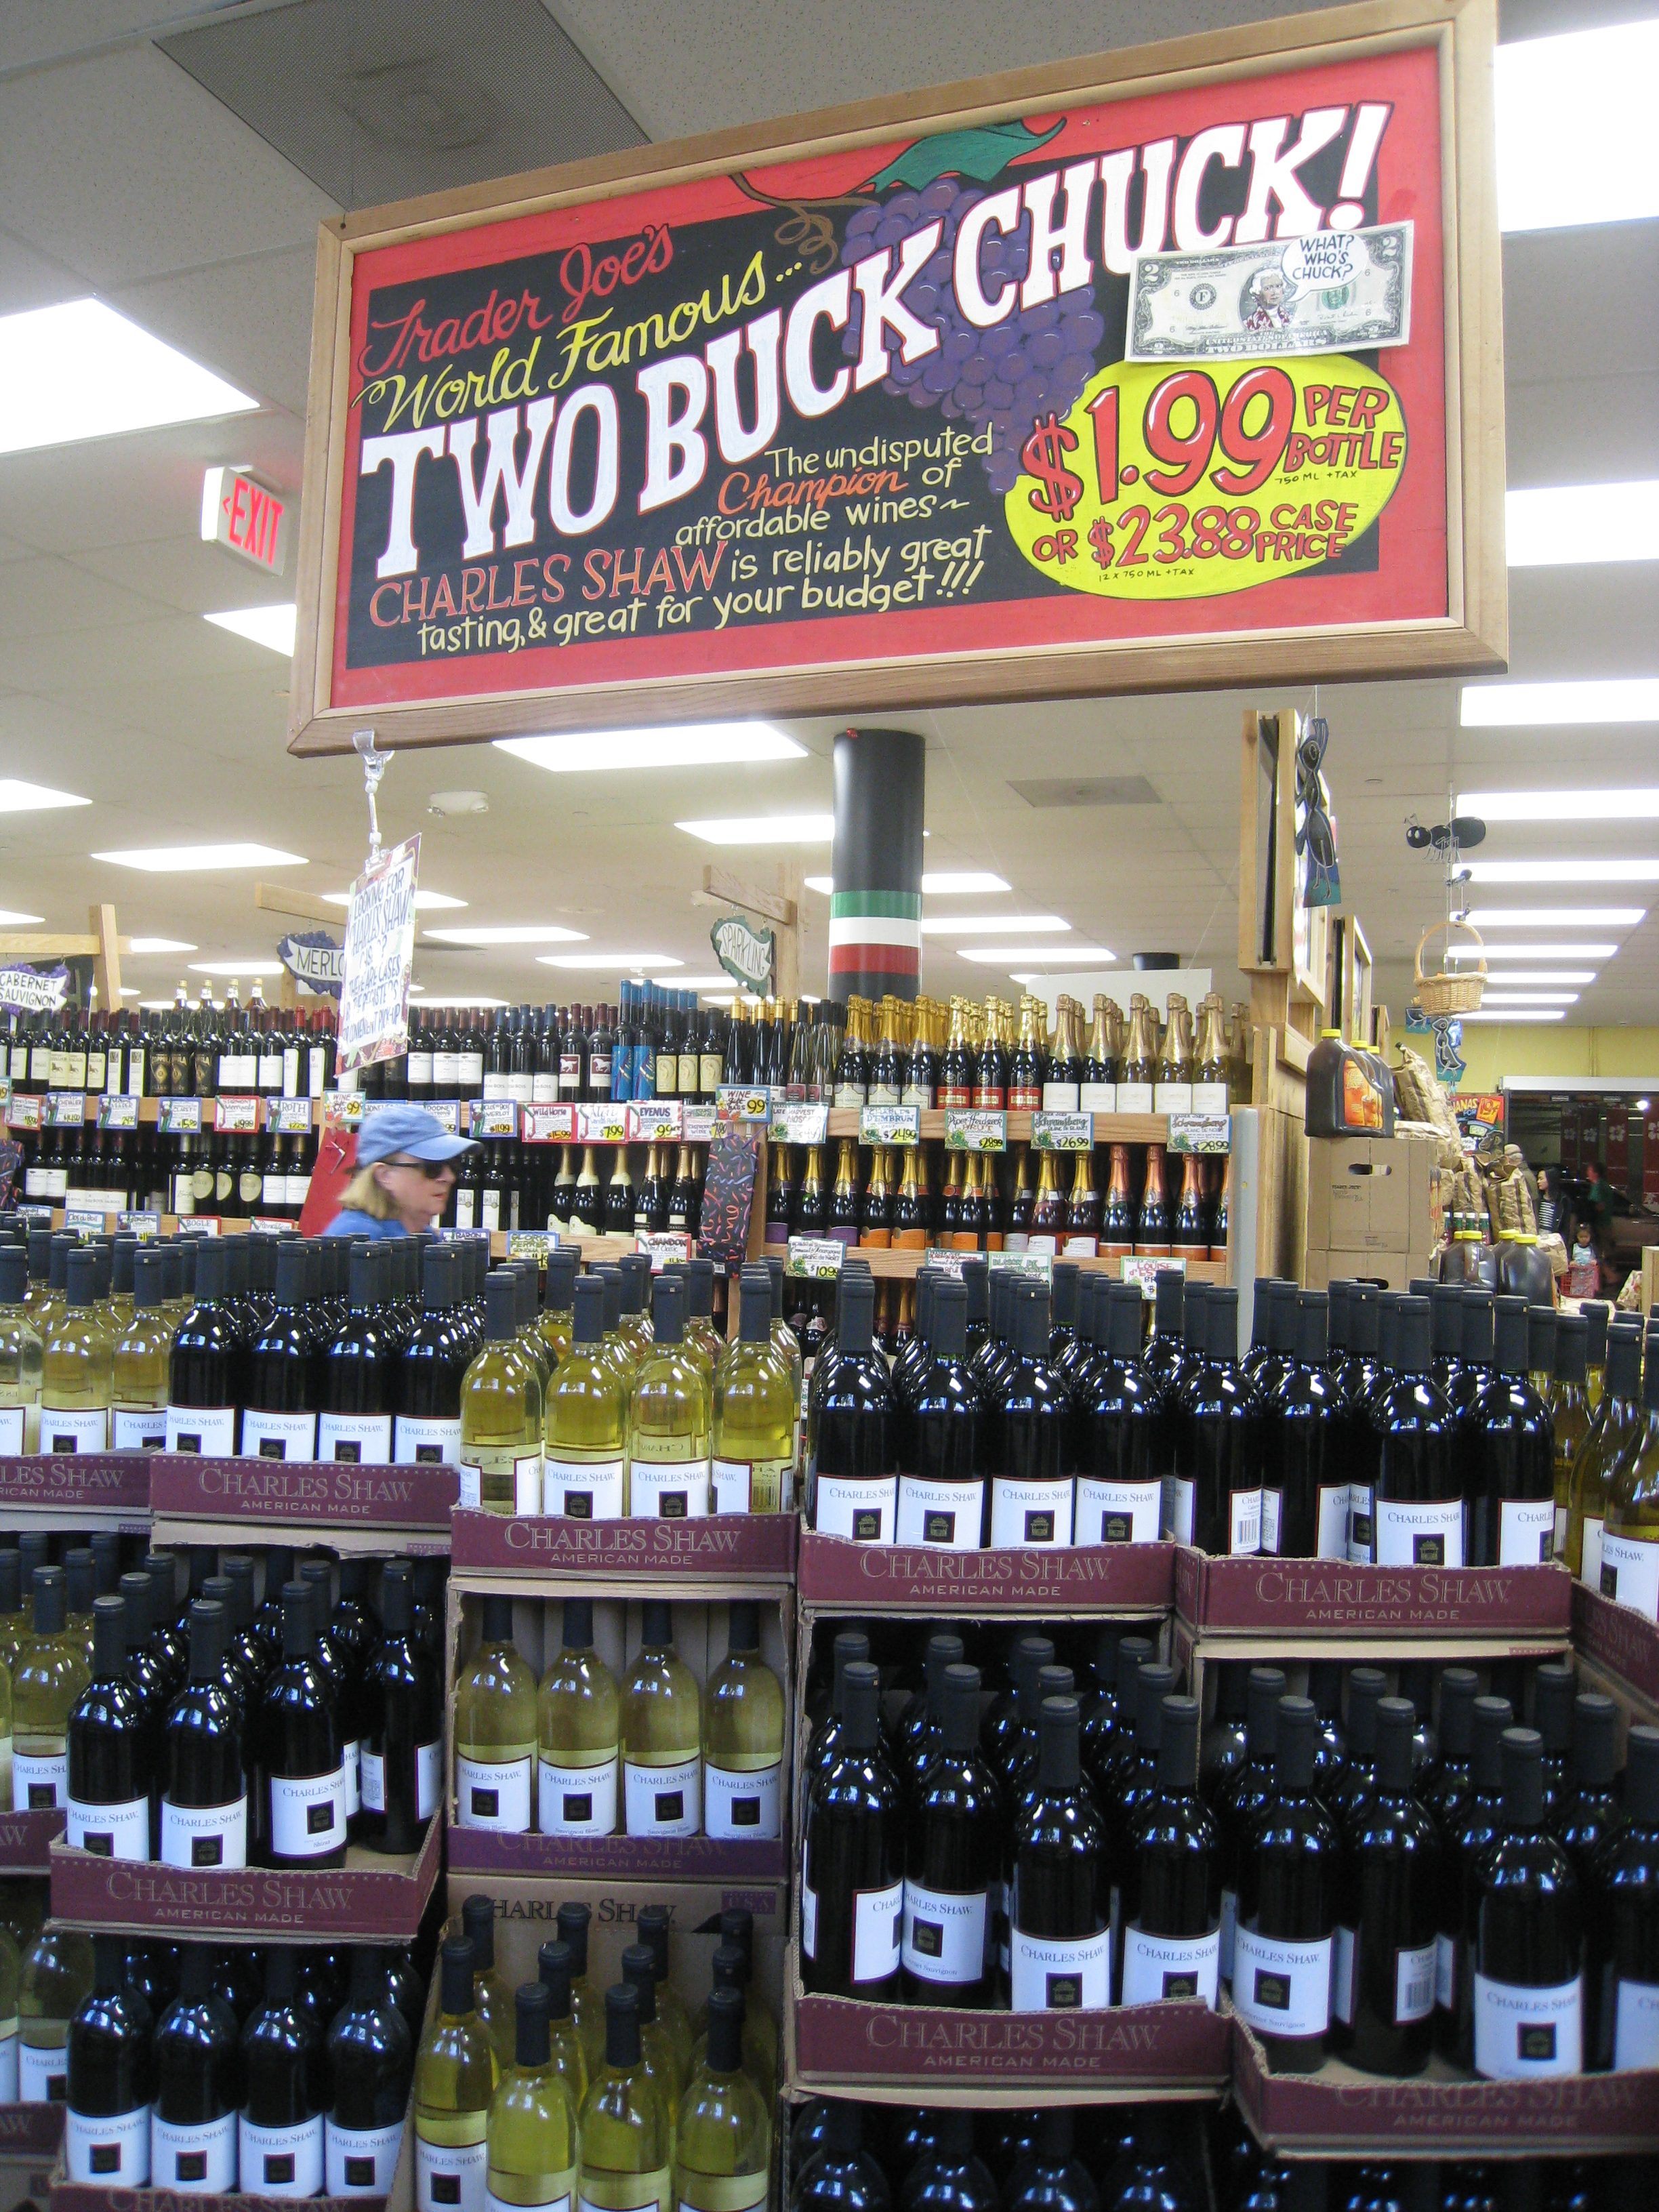 Trader Joe's 2-buck Chuck wine: things you didn't know - Business